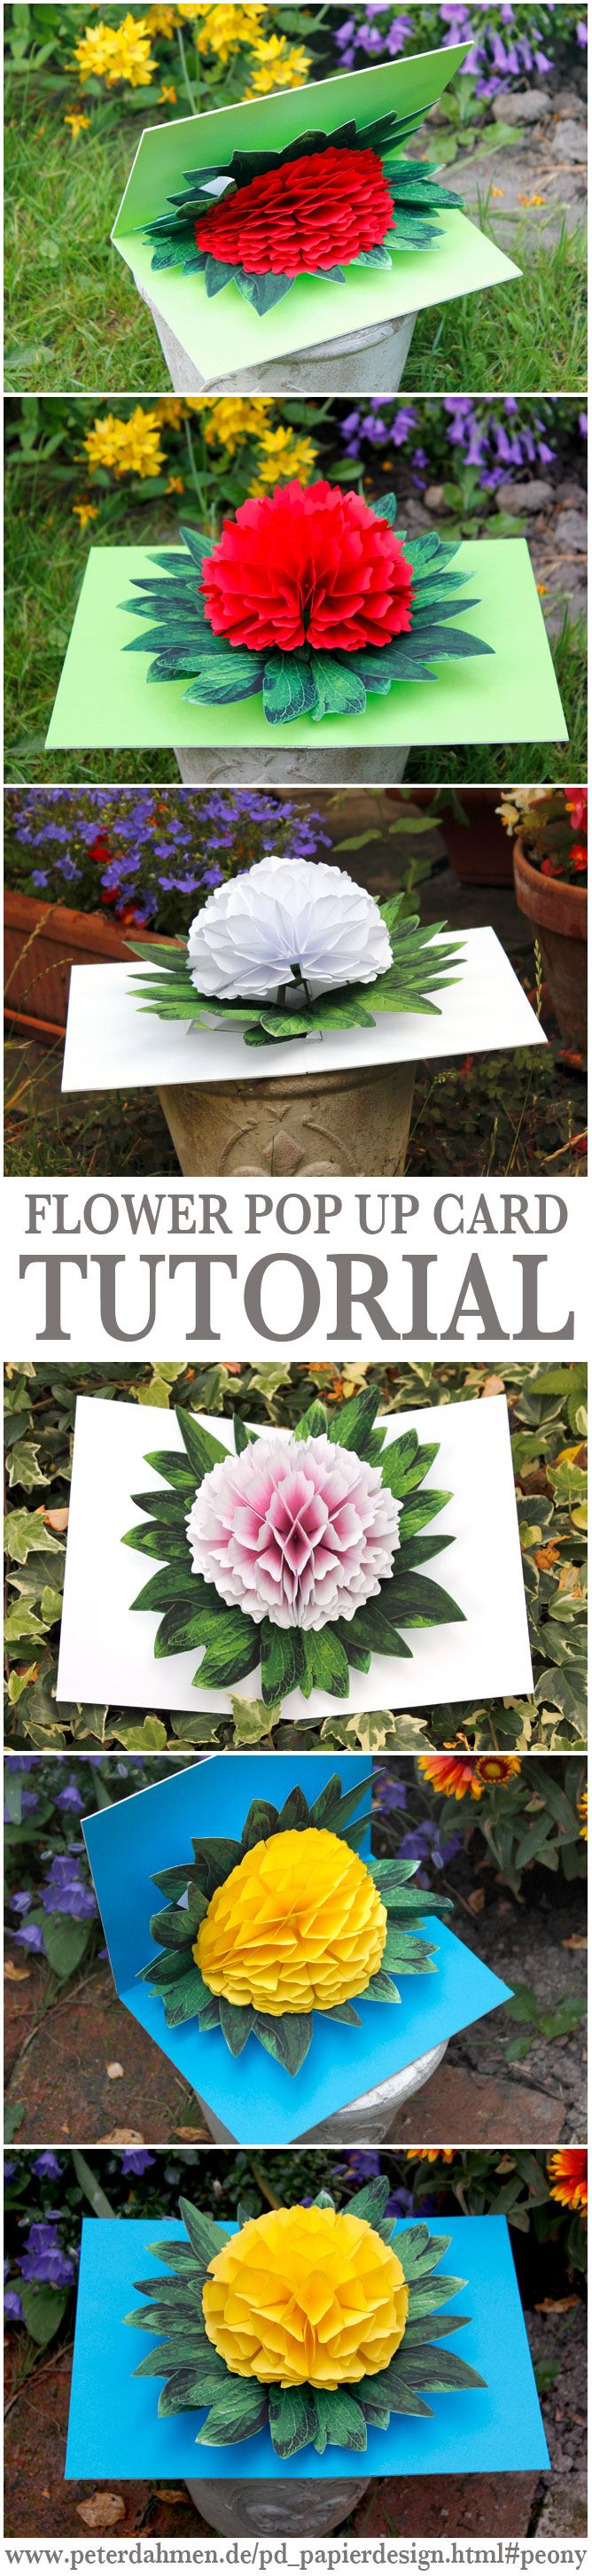 Flower Pop Up Card Tutorial by Peter Dahmen